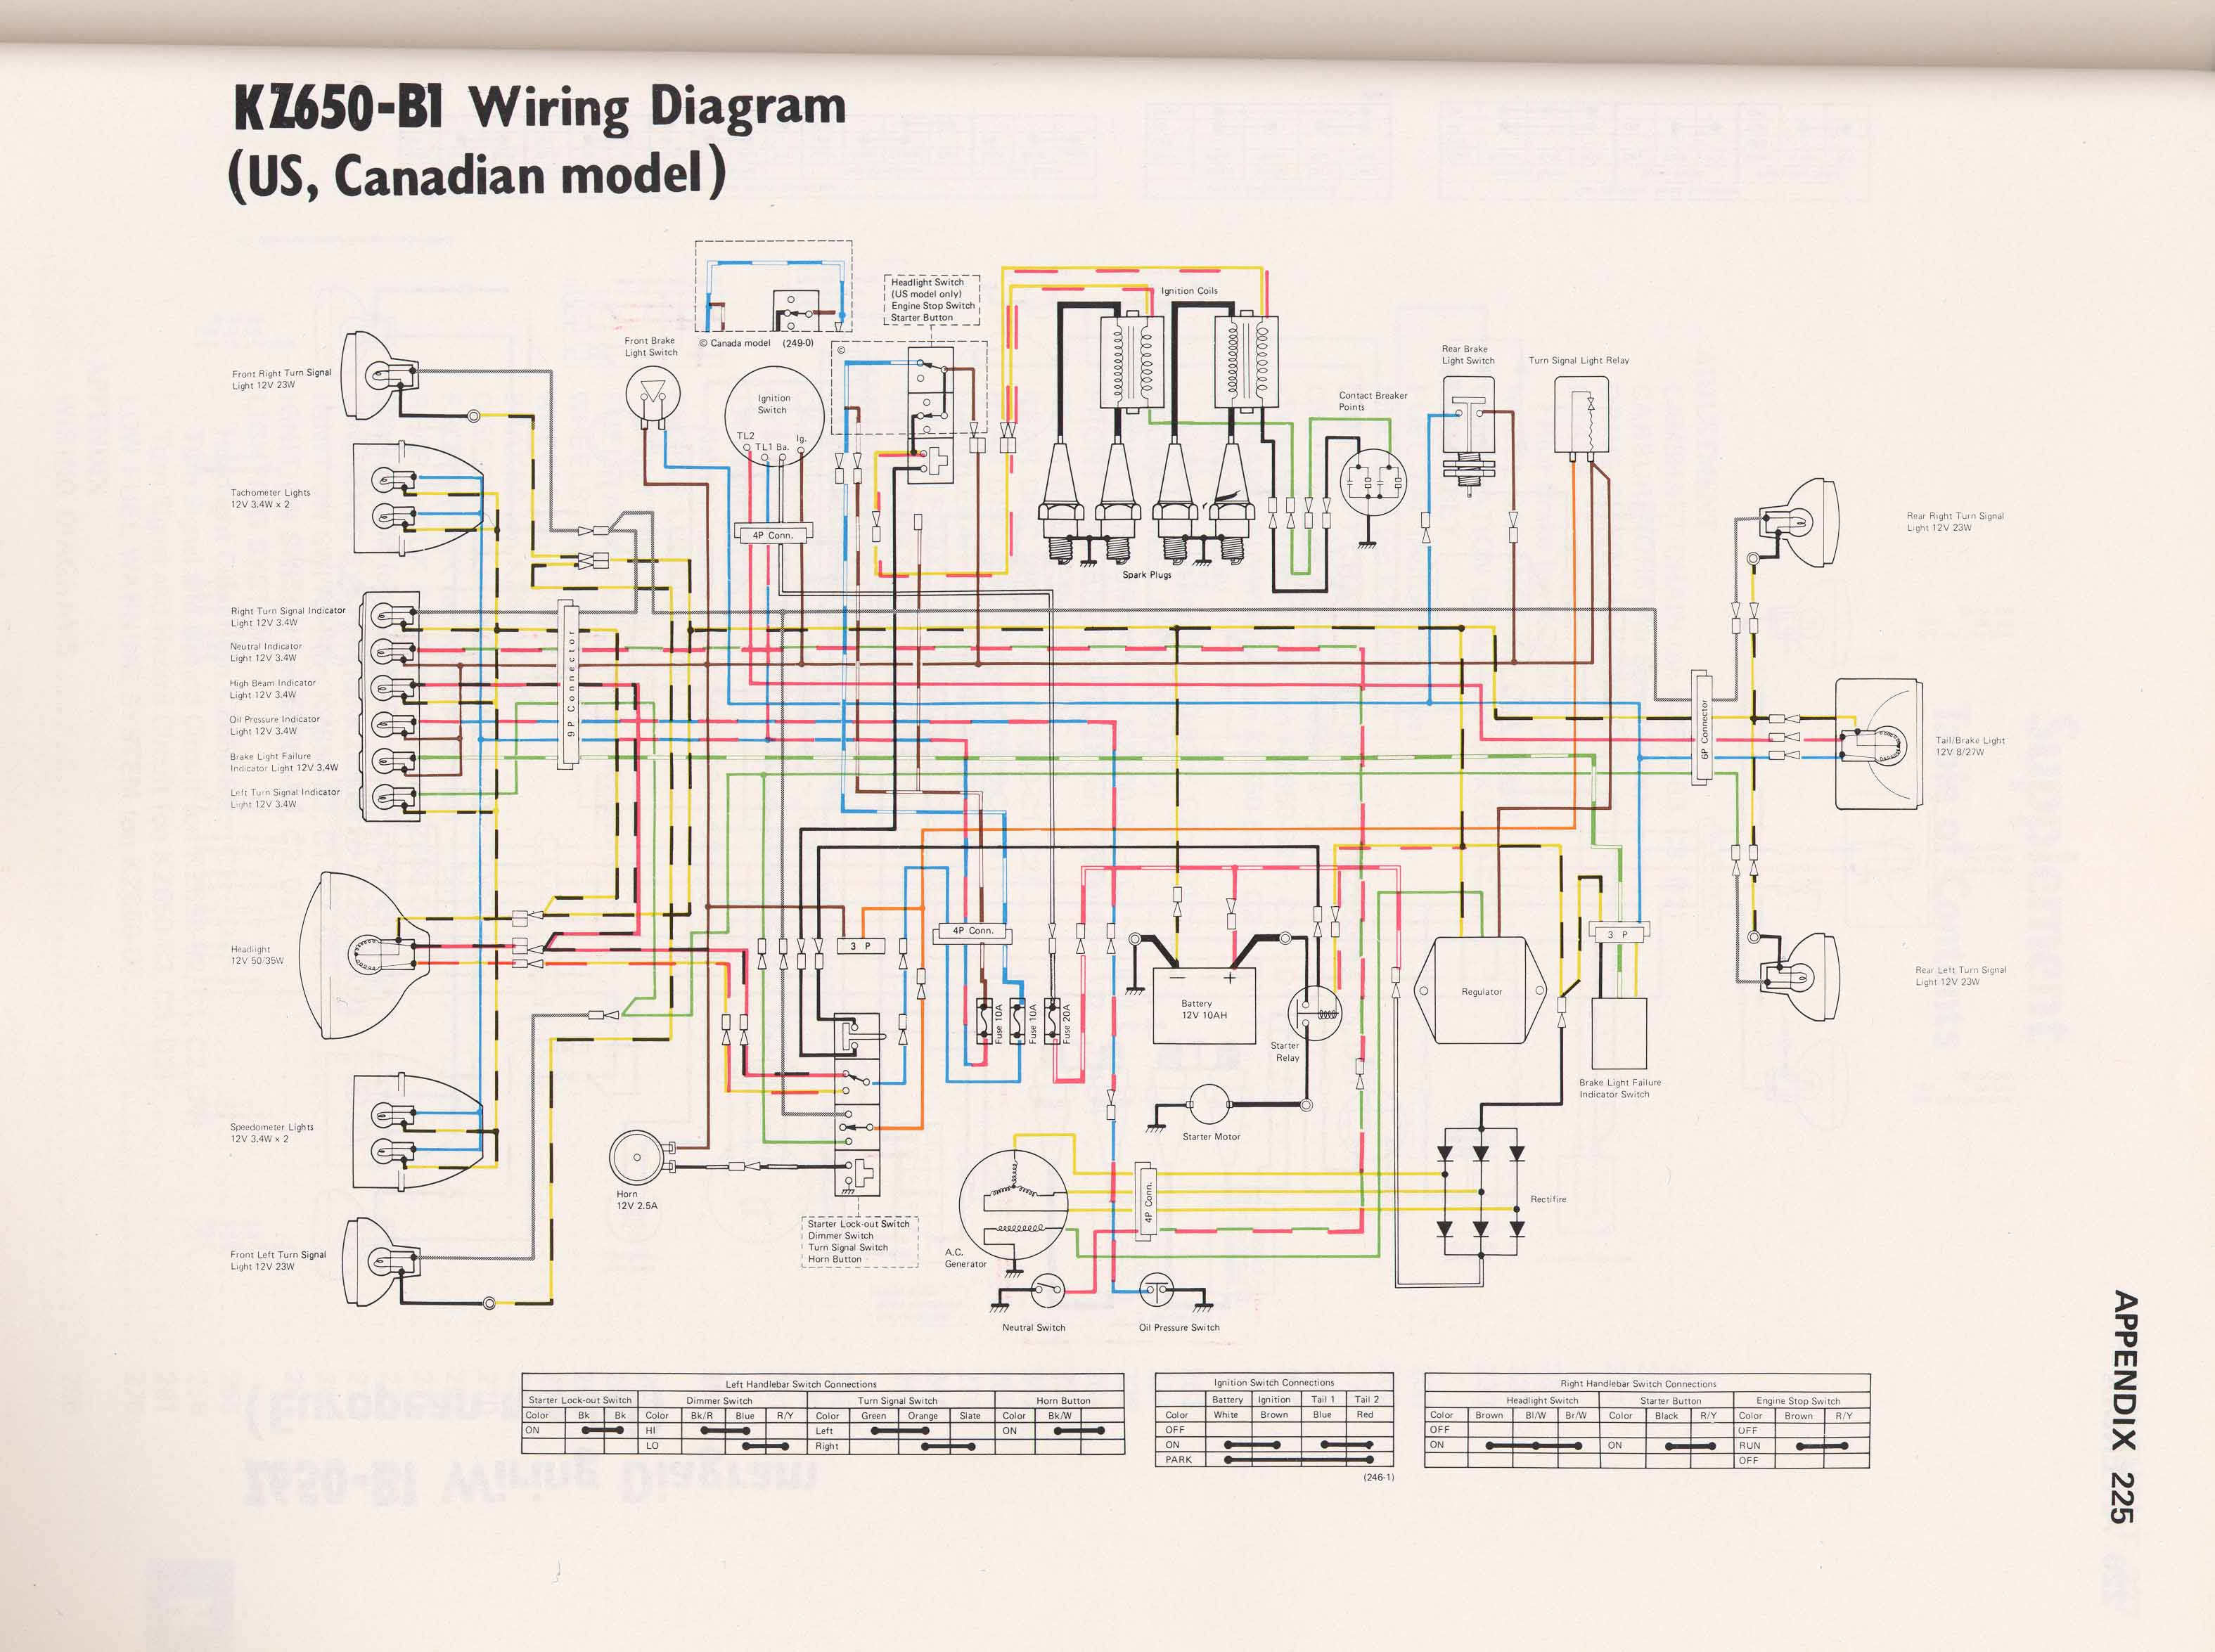 kz650 info wiring diagrams KZ650 Ignition Wiring Diagram kz650 wiring diagrams